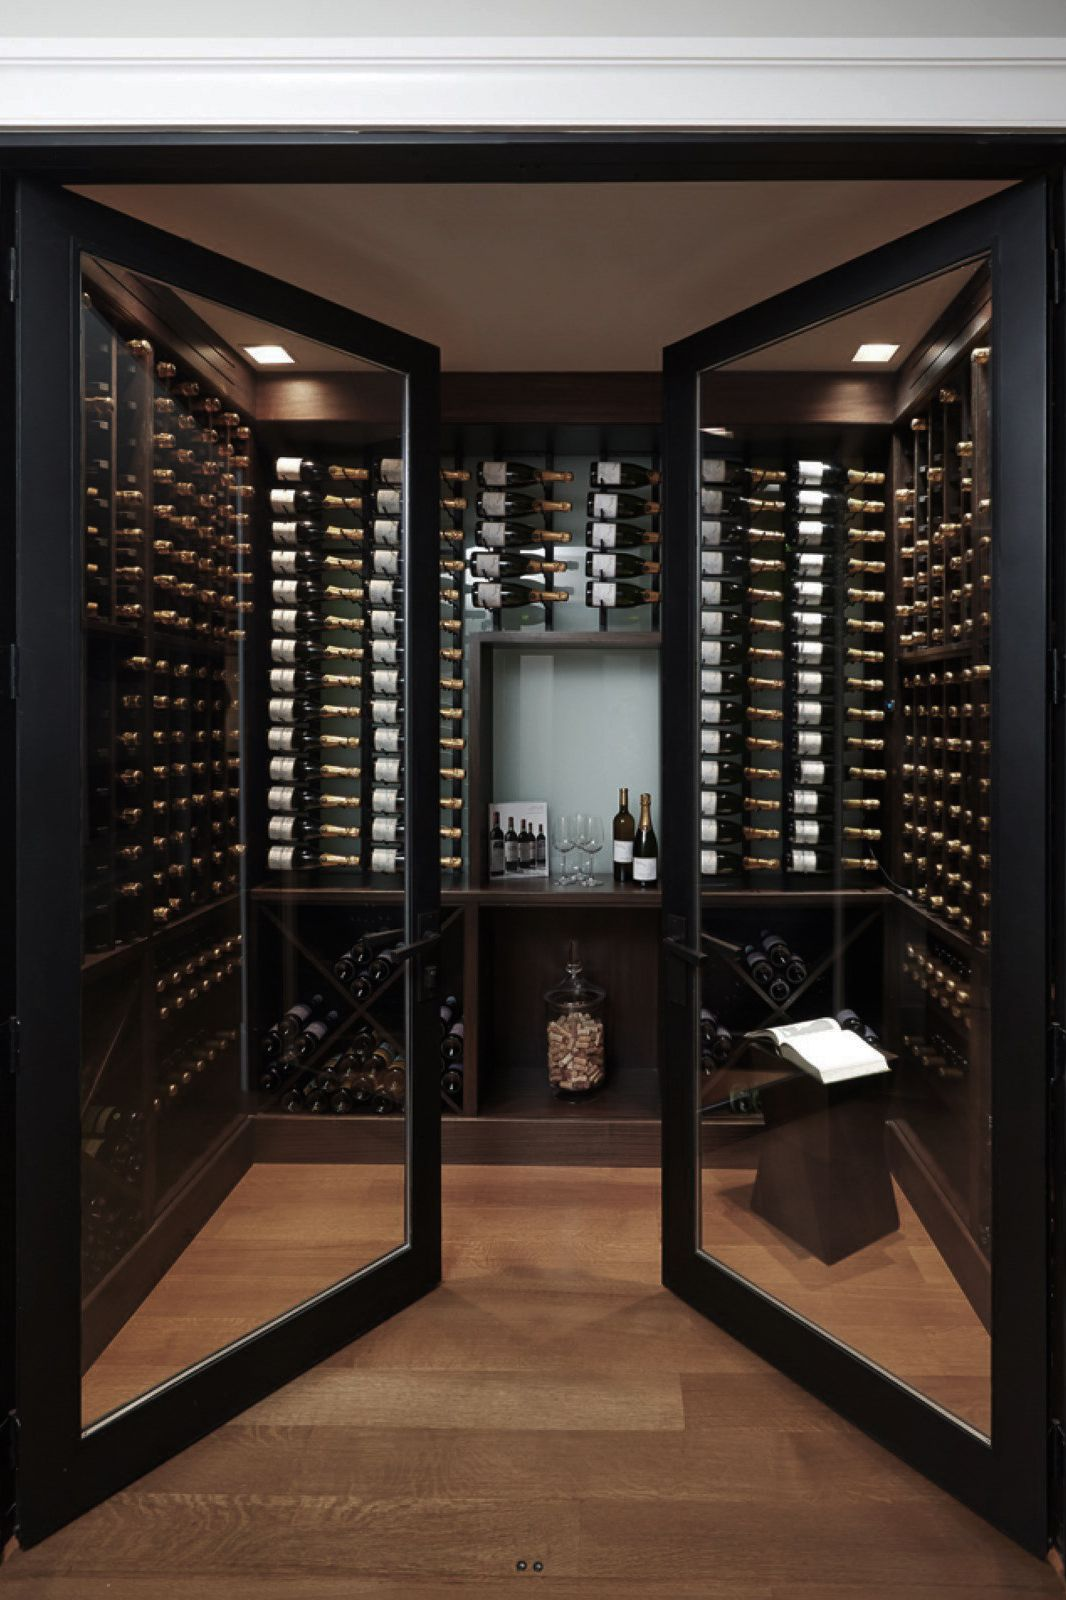 wine closet ideas | houseimagesmishurda | pinterest | june, wine